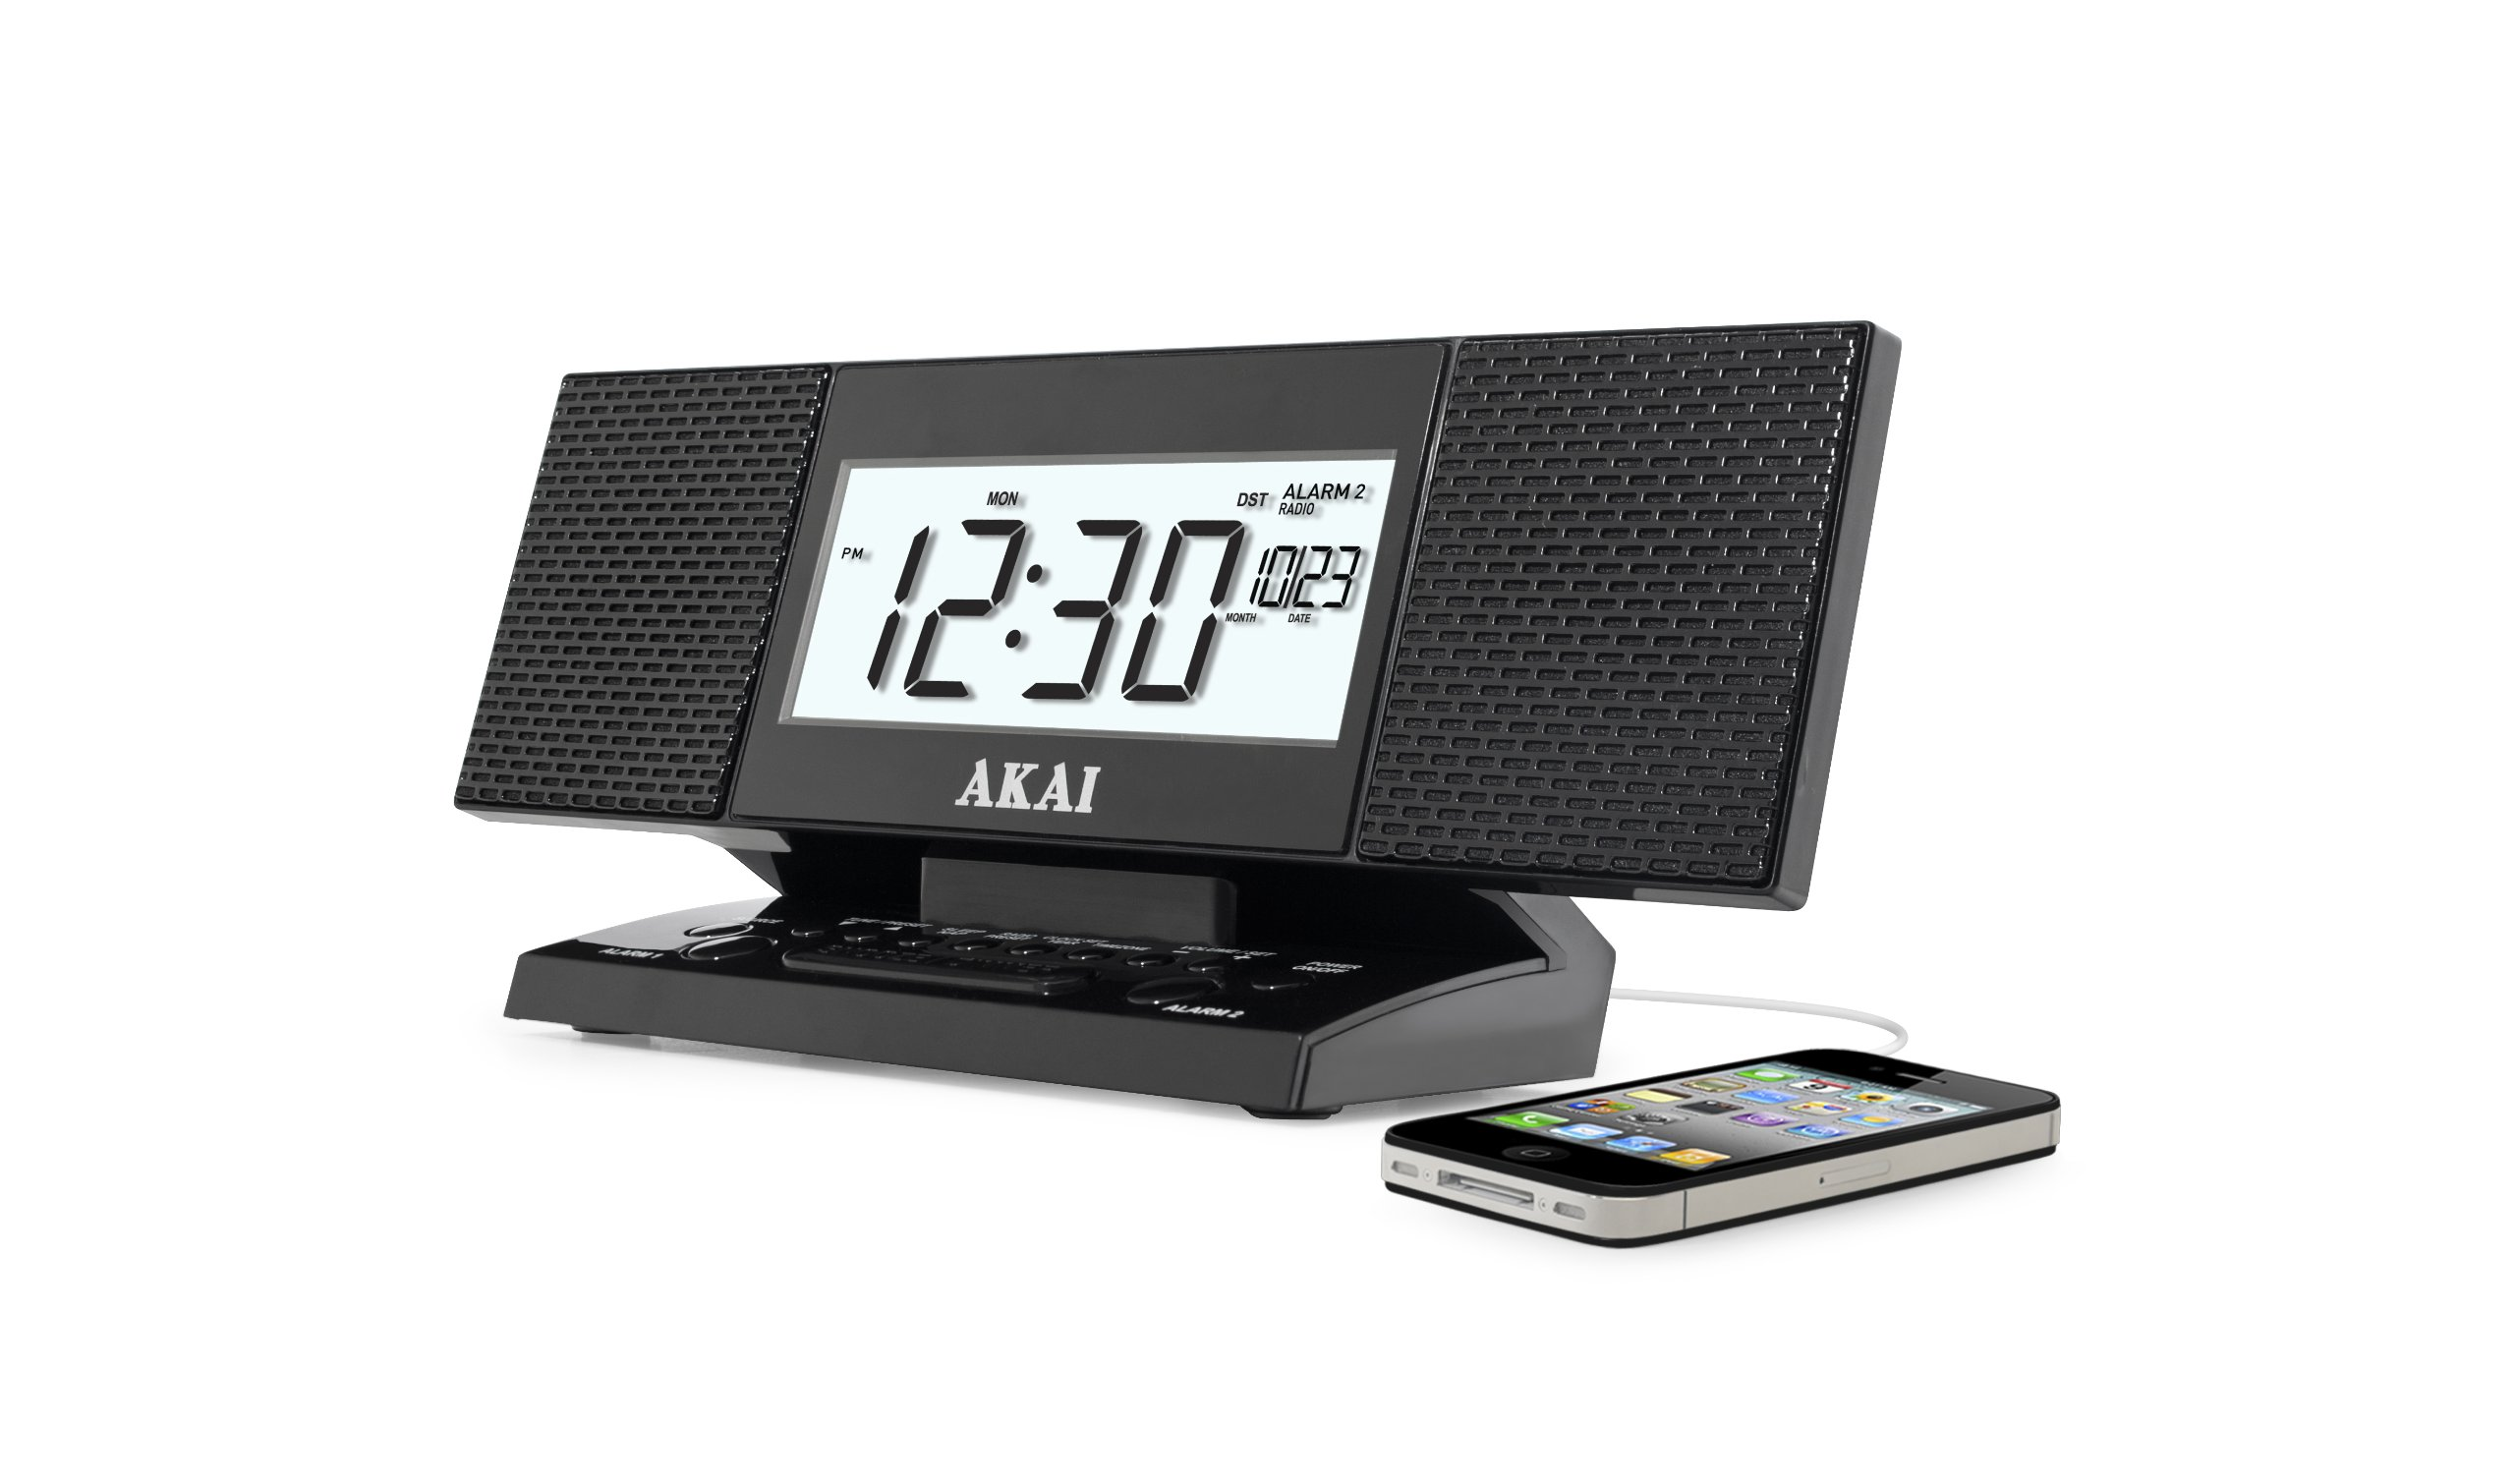 Akai CEU1300 Hotel Series Clock Radio